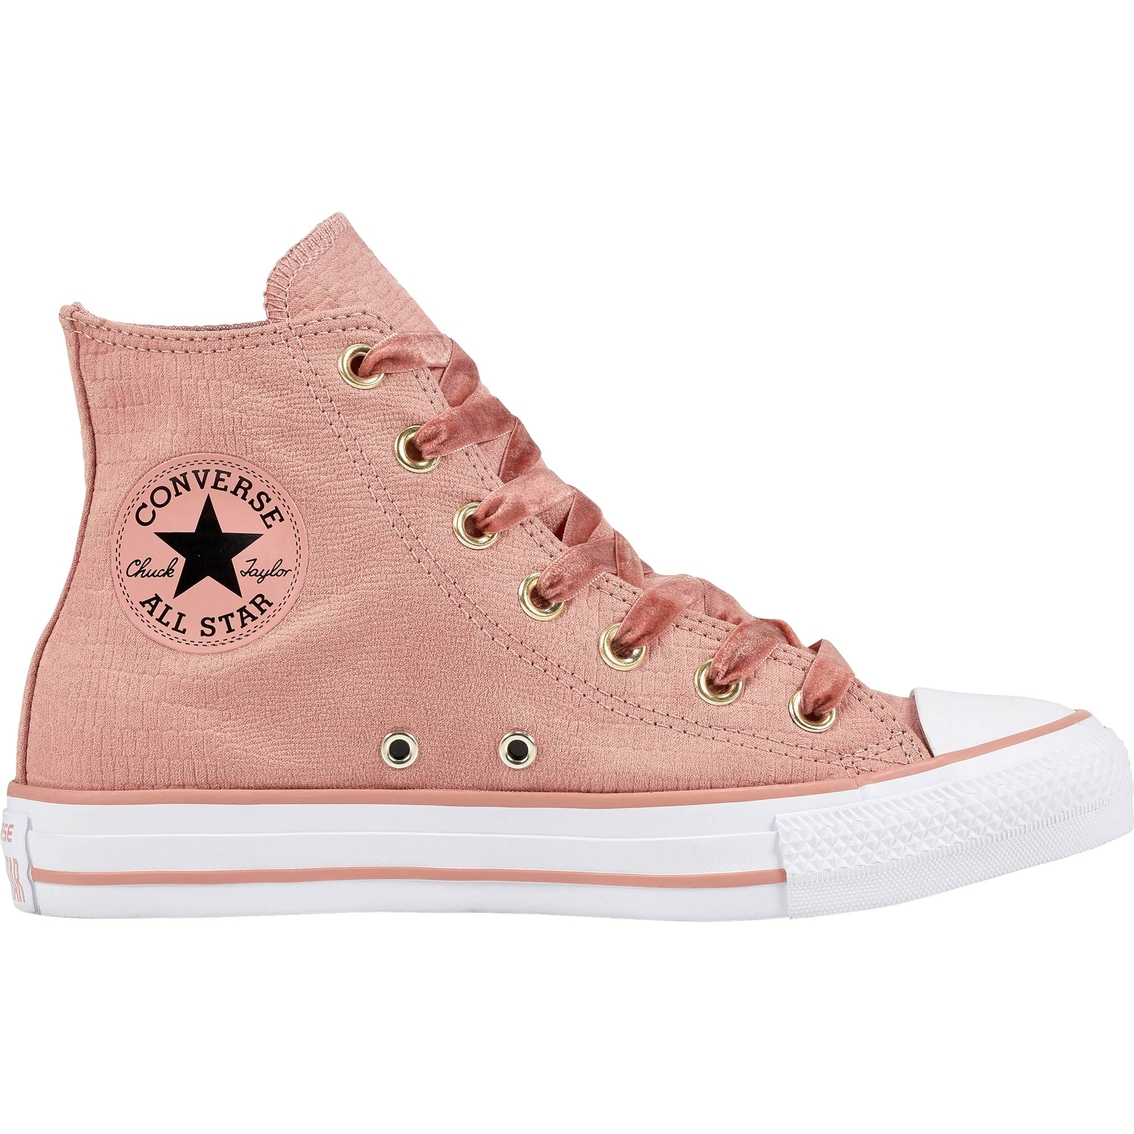 a3dc5118c91eee Converse Women s Chuck Taylor All Star Pro High Top Sneakers ...